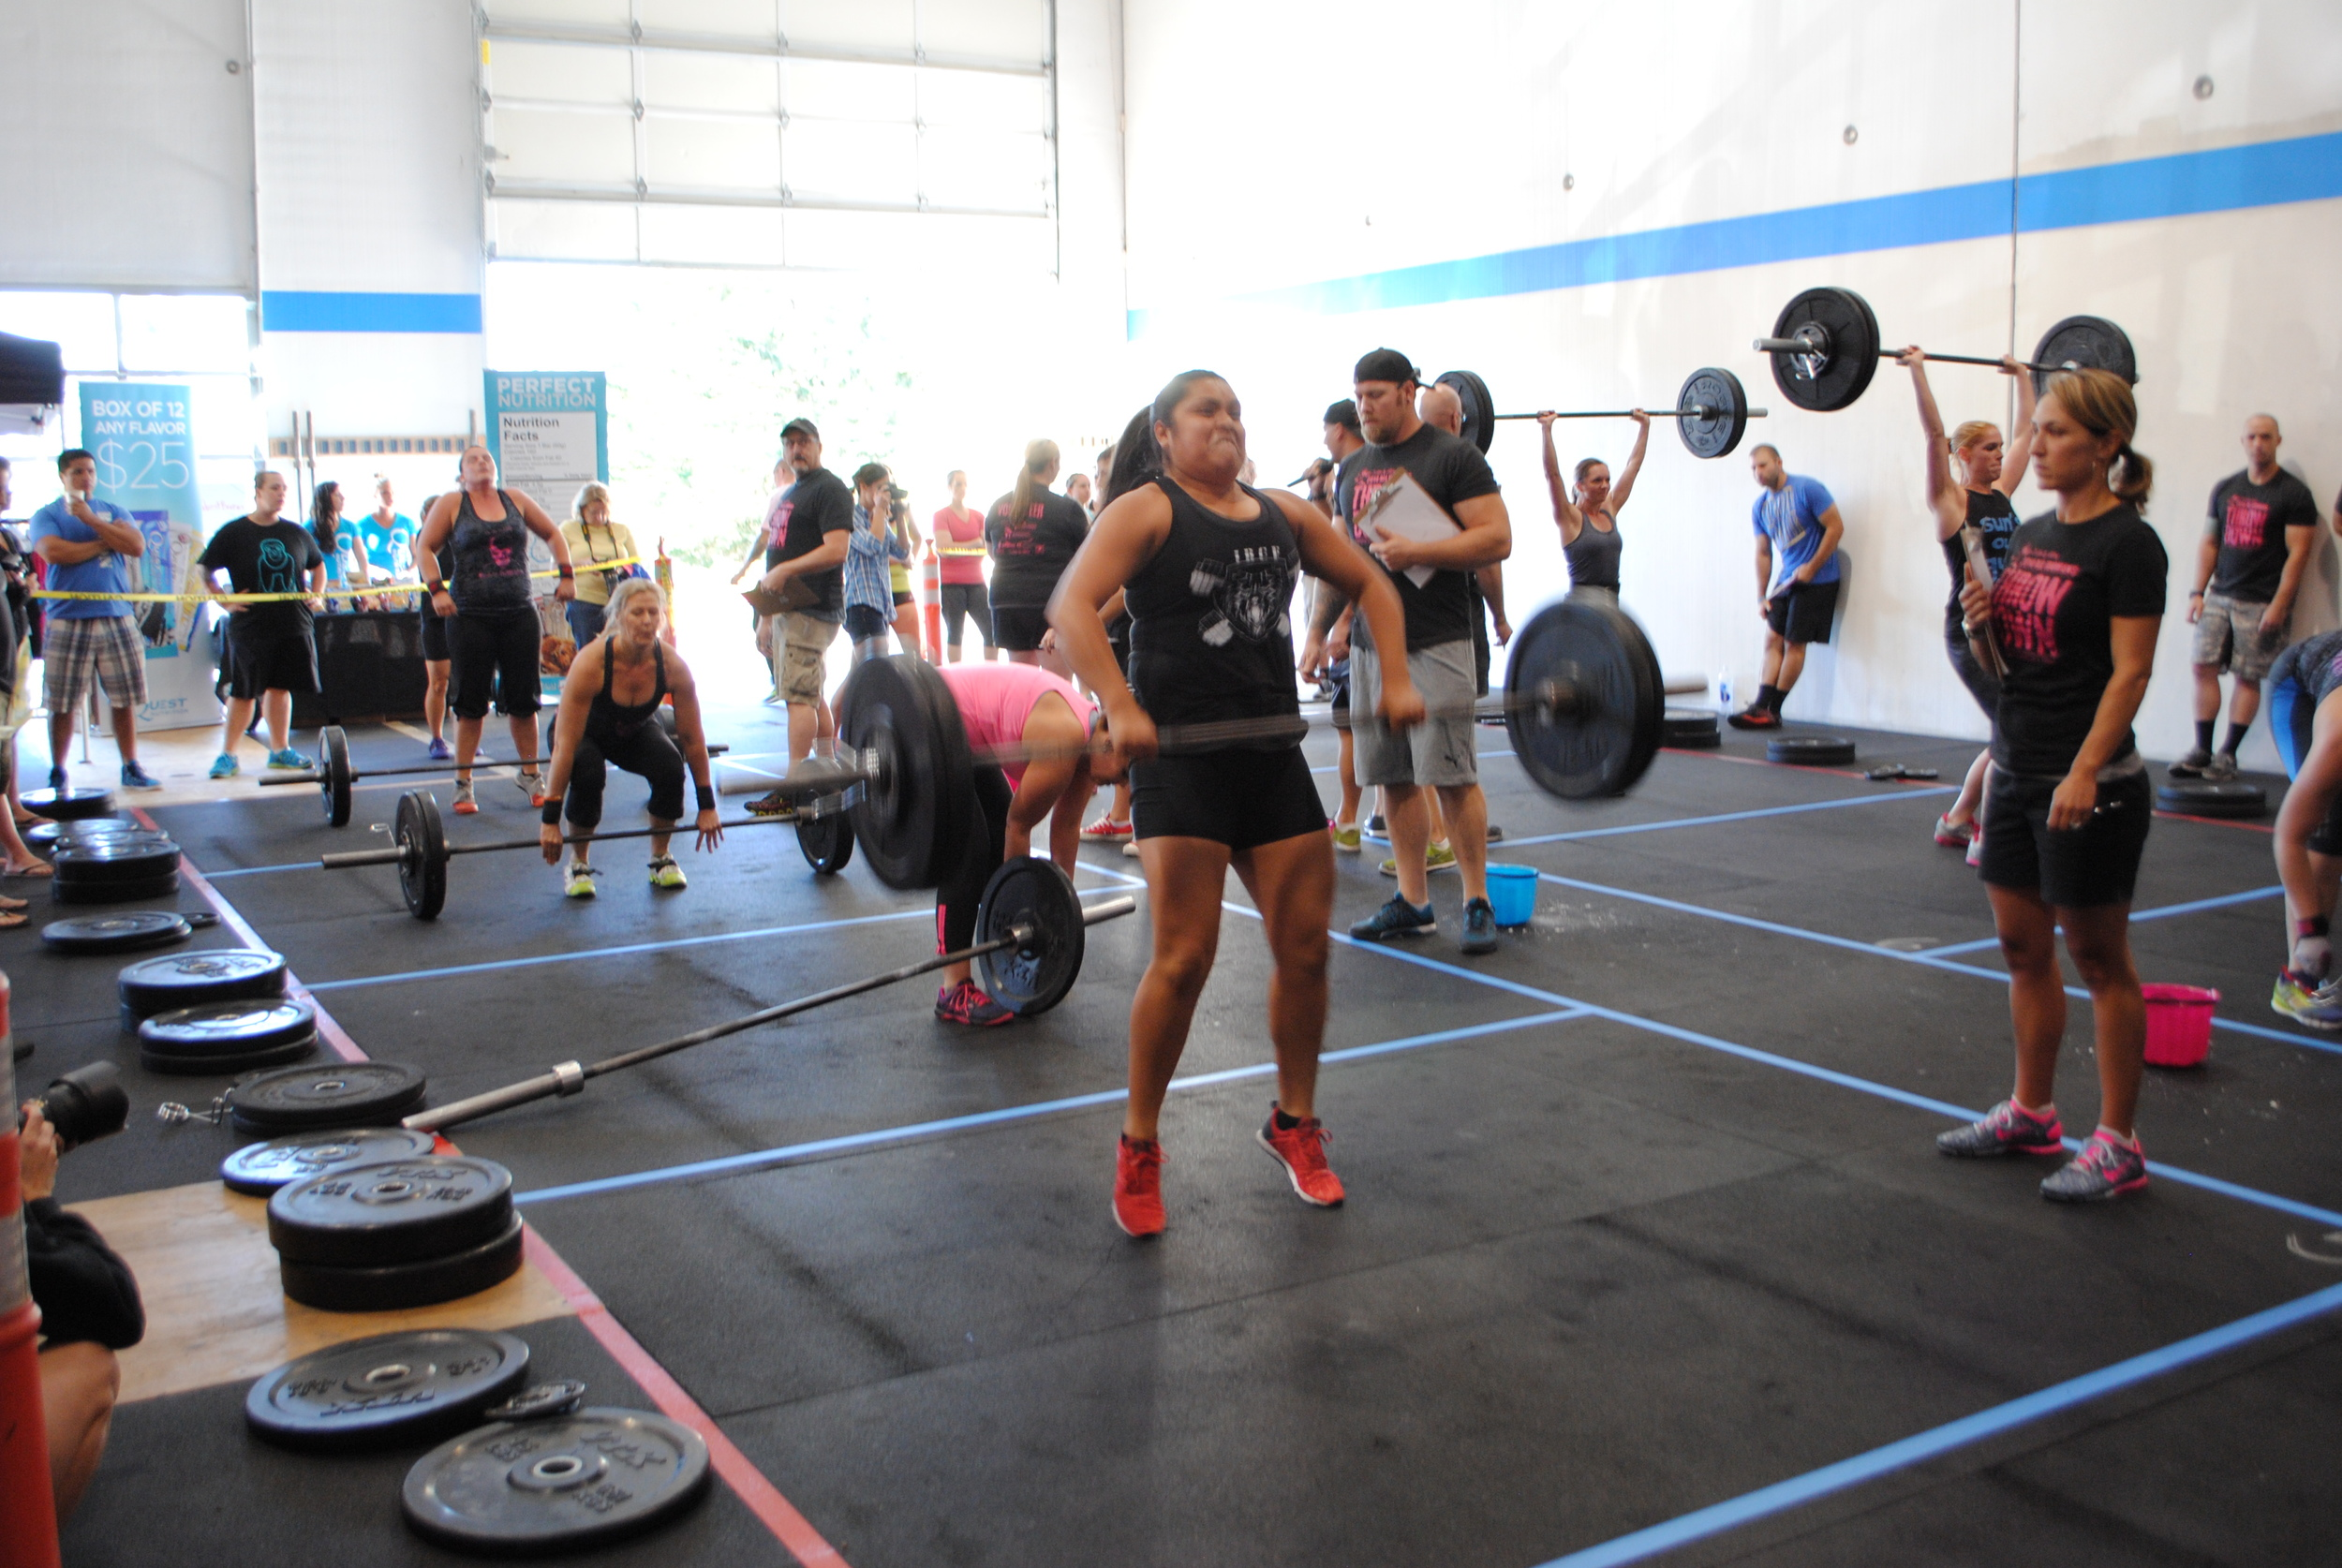 After beginning CrossFit with us less than a year ago, Sara Castaneda competed in her first competition: Booties in Action.